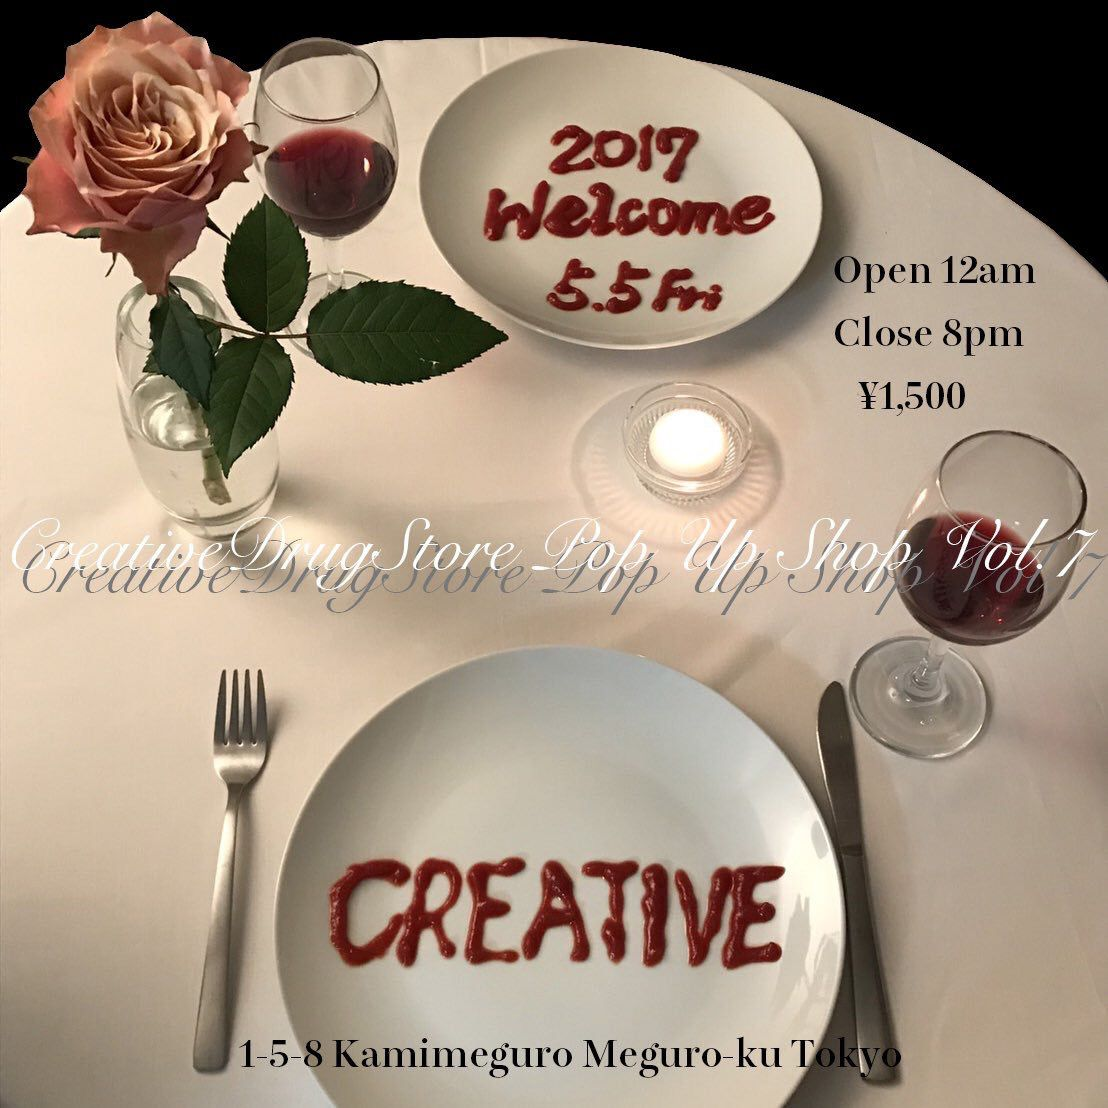 in dのソロアルバムがリリース creative drug store pop up shop vol 7